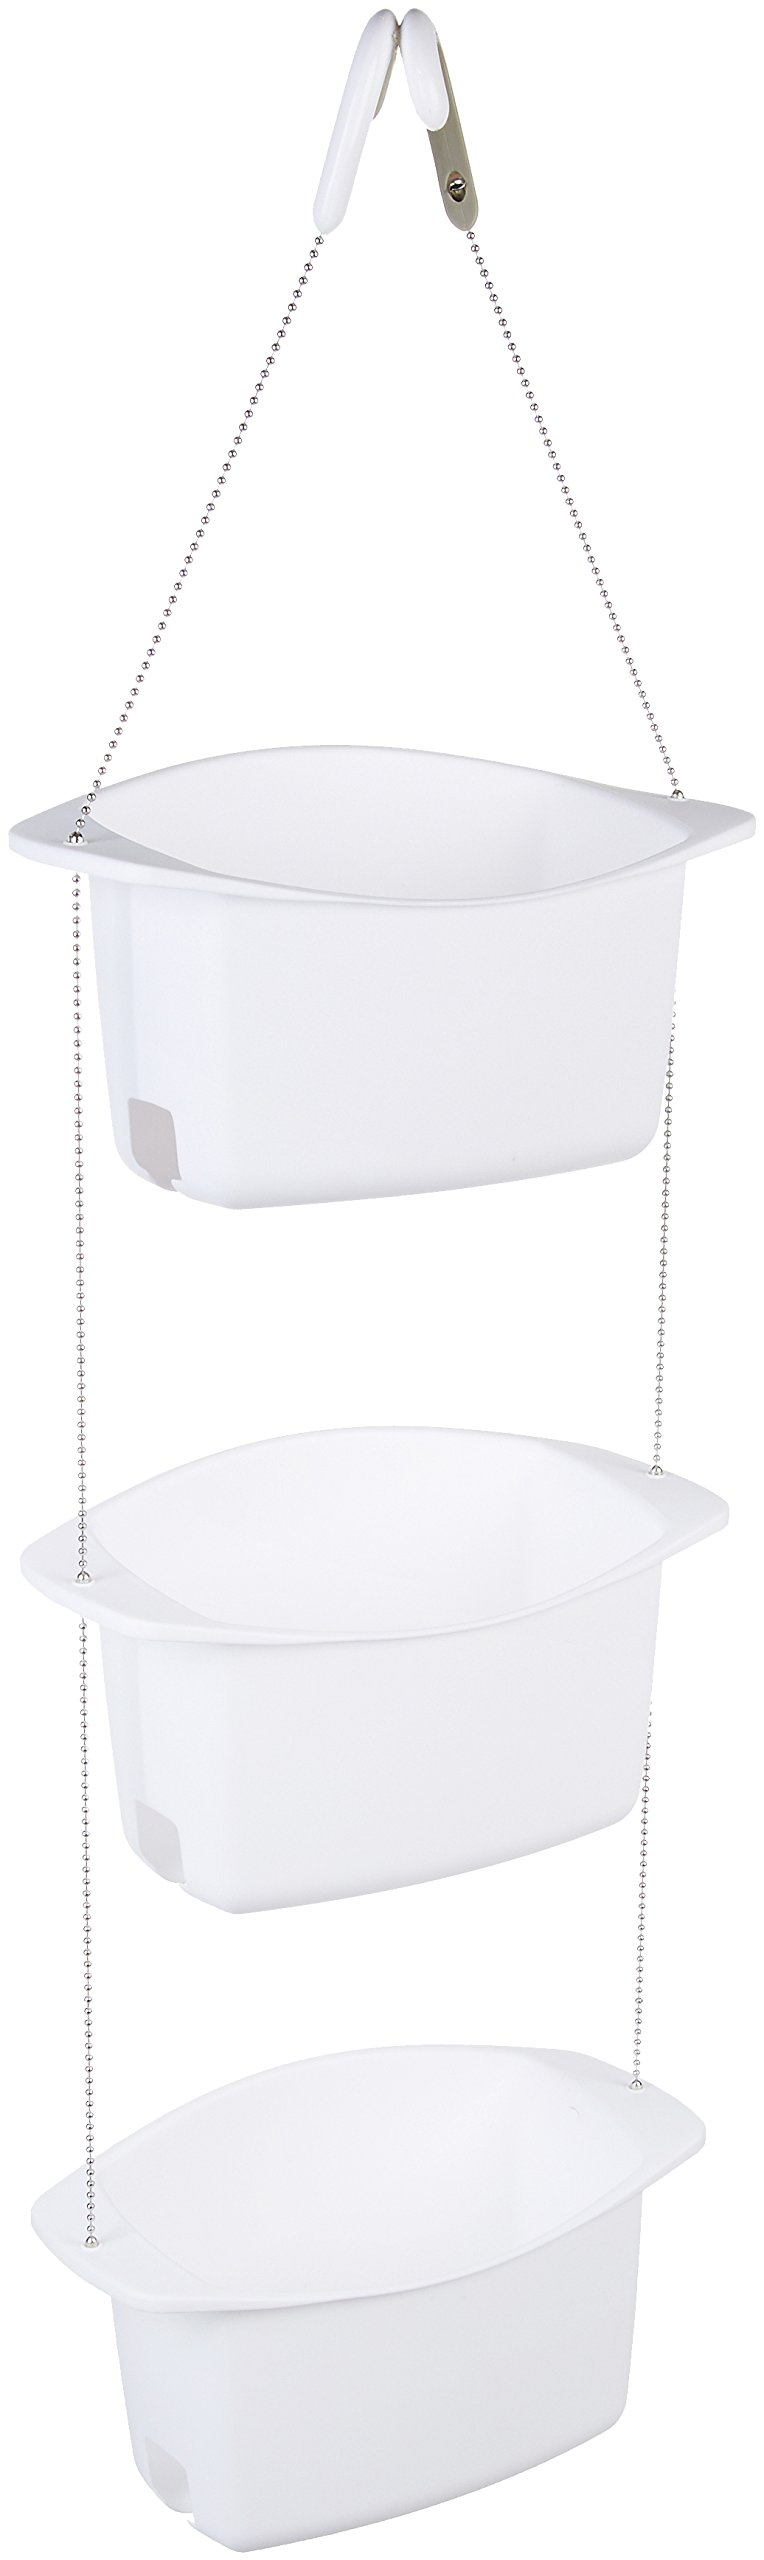 Sowerhead Caddy Shower Organizer Basket Adjustable Hanging Plastic ...